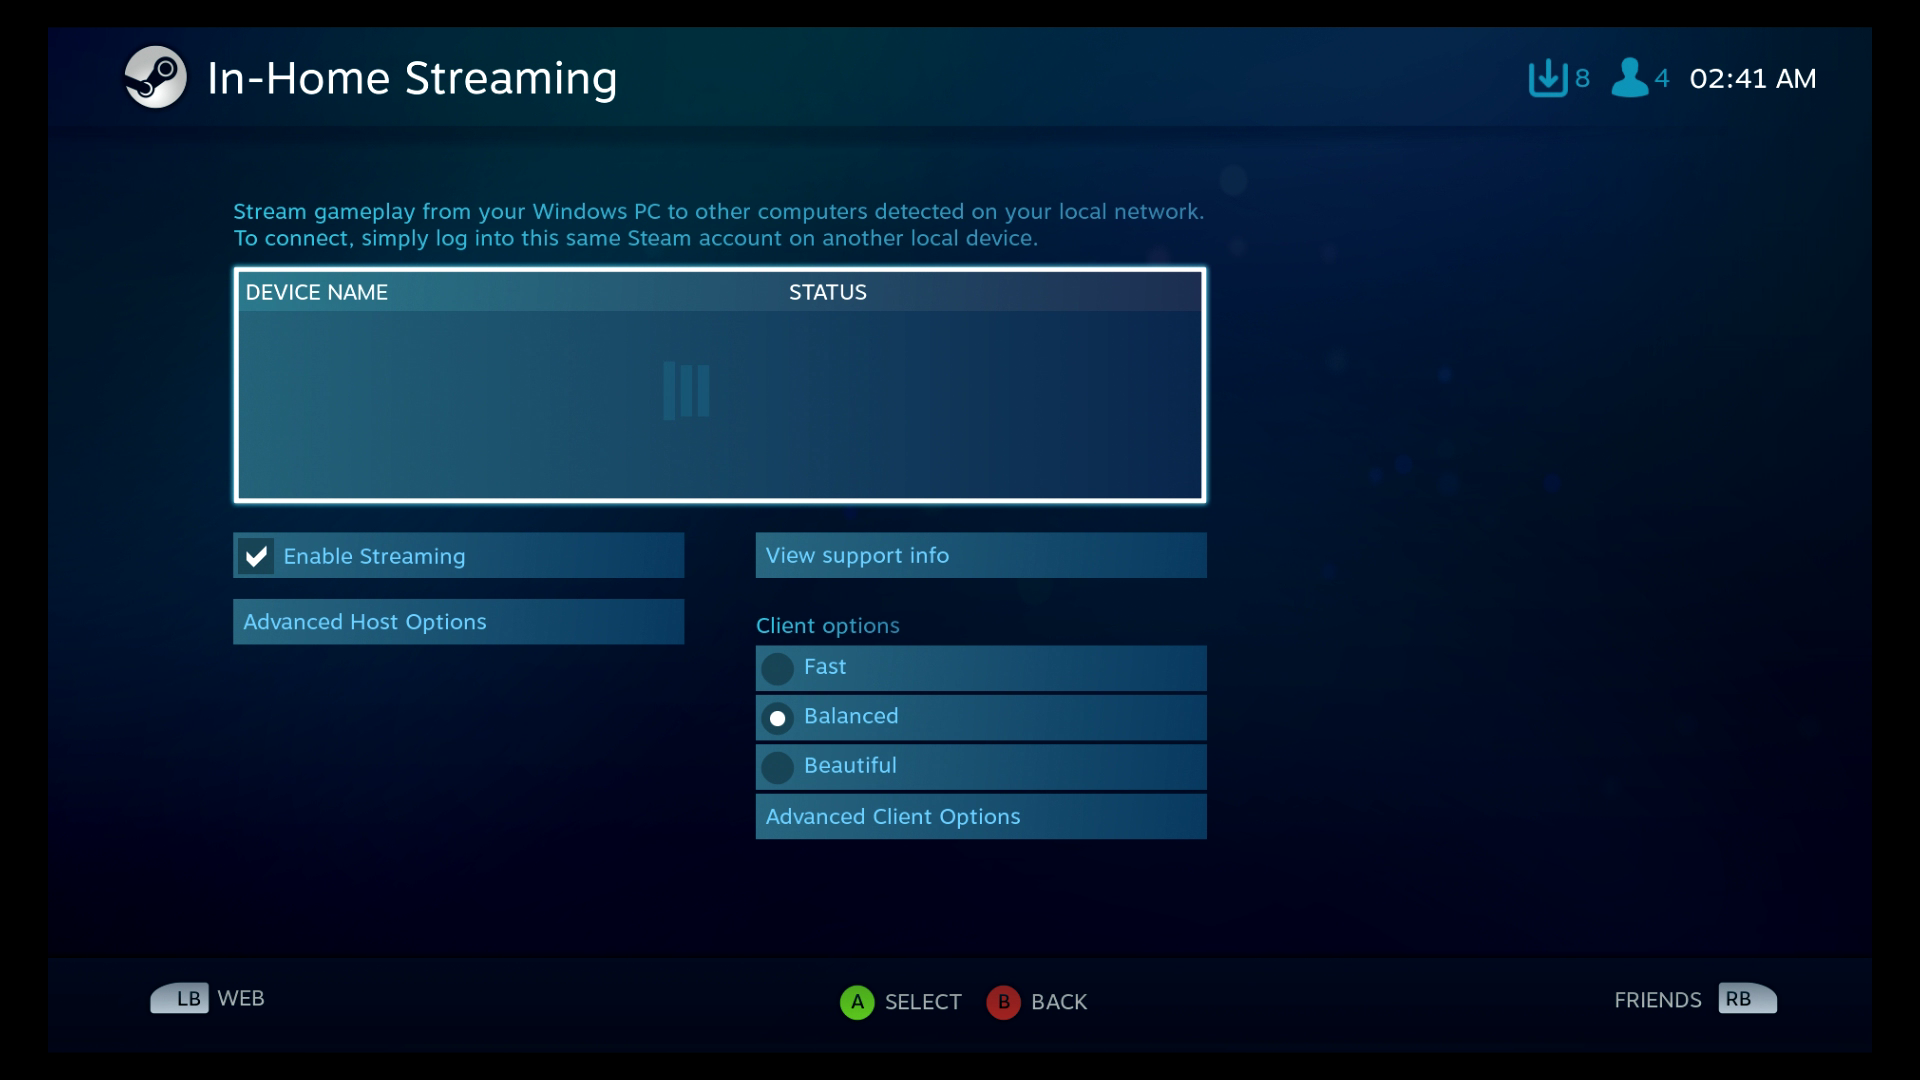 You Can Also Tweak Streaming Settings To Focus More On Speed Quality